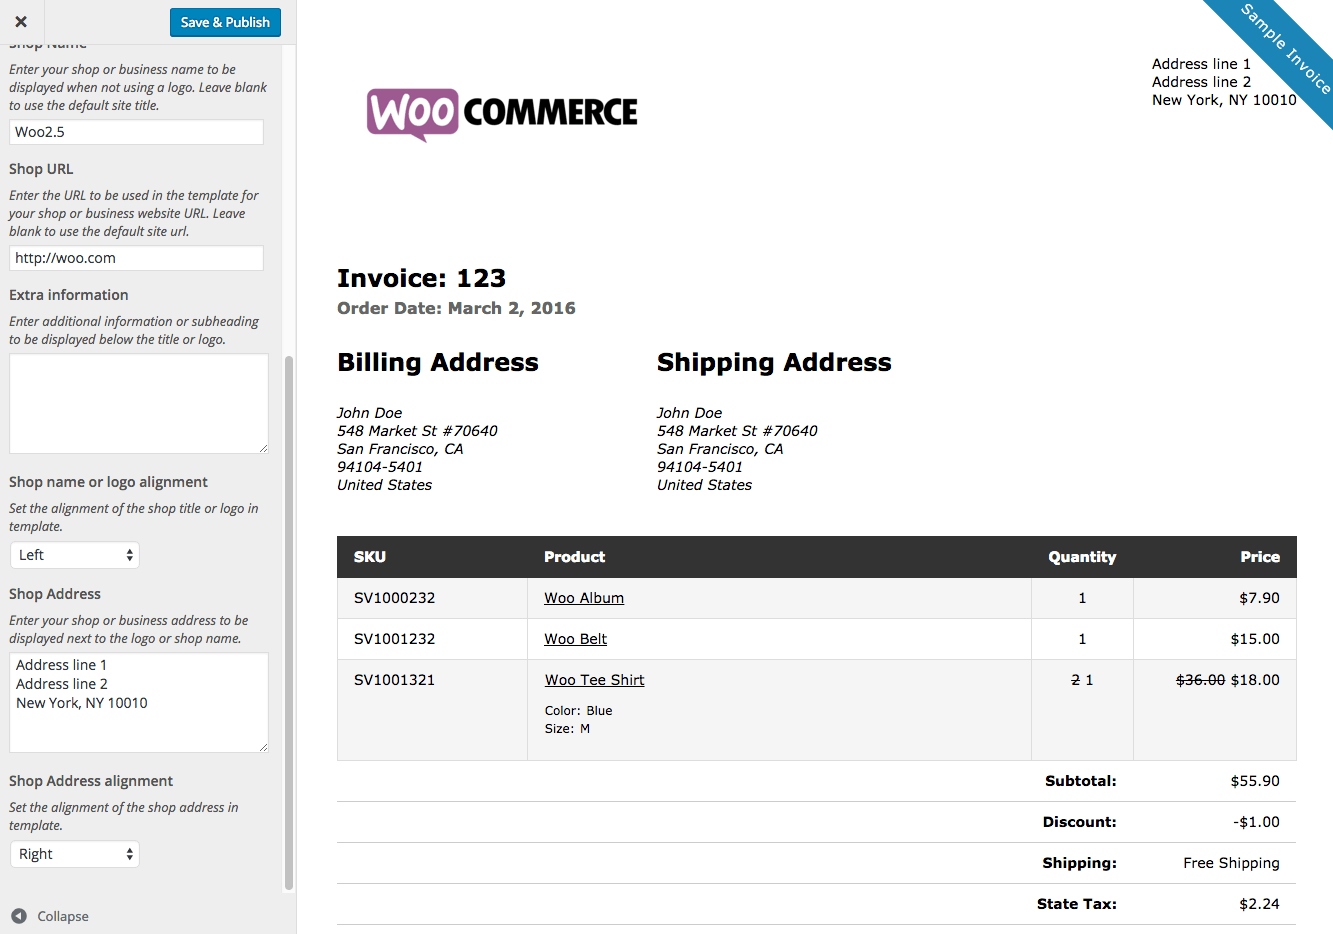 Weirdmailus  Pretty Woocommerce Print Invoices Amp Packing Lists  Woocommerce Docs With Hot Woocommerce Print Invoices  Packing Lists Customizer With Breathtaking Home Depot Lost Receipt Also Tax Claims Without Receipts In Addition Travel Bill Receipt And Receipt Data As Well As Sentence For Receipt Additionally Receipt Stub From Docswoocommercecom With Weirdmailus  Hot Woocommerce Print Invoices Amp Packing Lists  Woocommerce Docs With Breathtaking Woocommerce Print Invoices  Packing Lists Customizer And Pretty Home Depot Lost Receipt Also Tax Claims Without Receipts In Addition Travel Bill Receipt From Docswoocommercecom